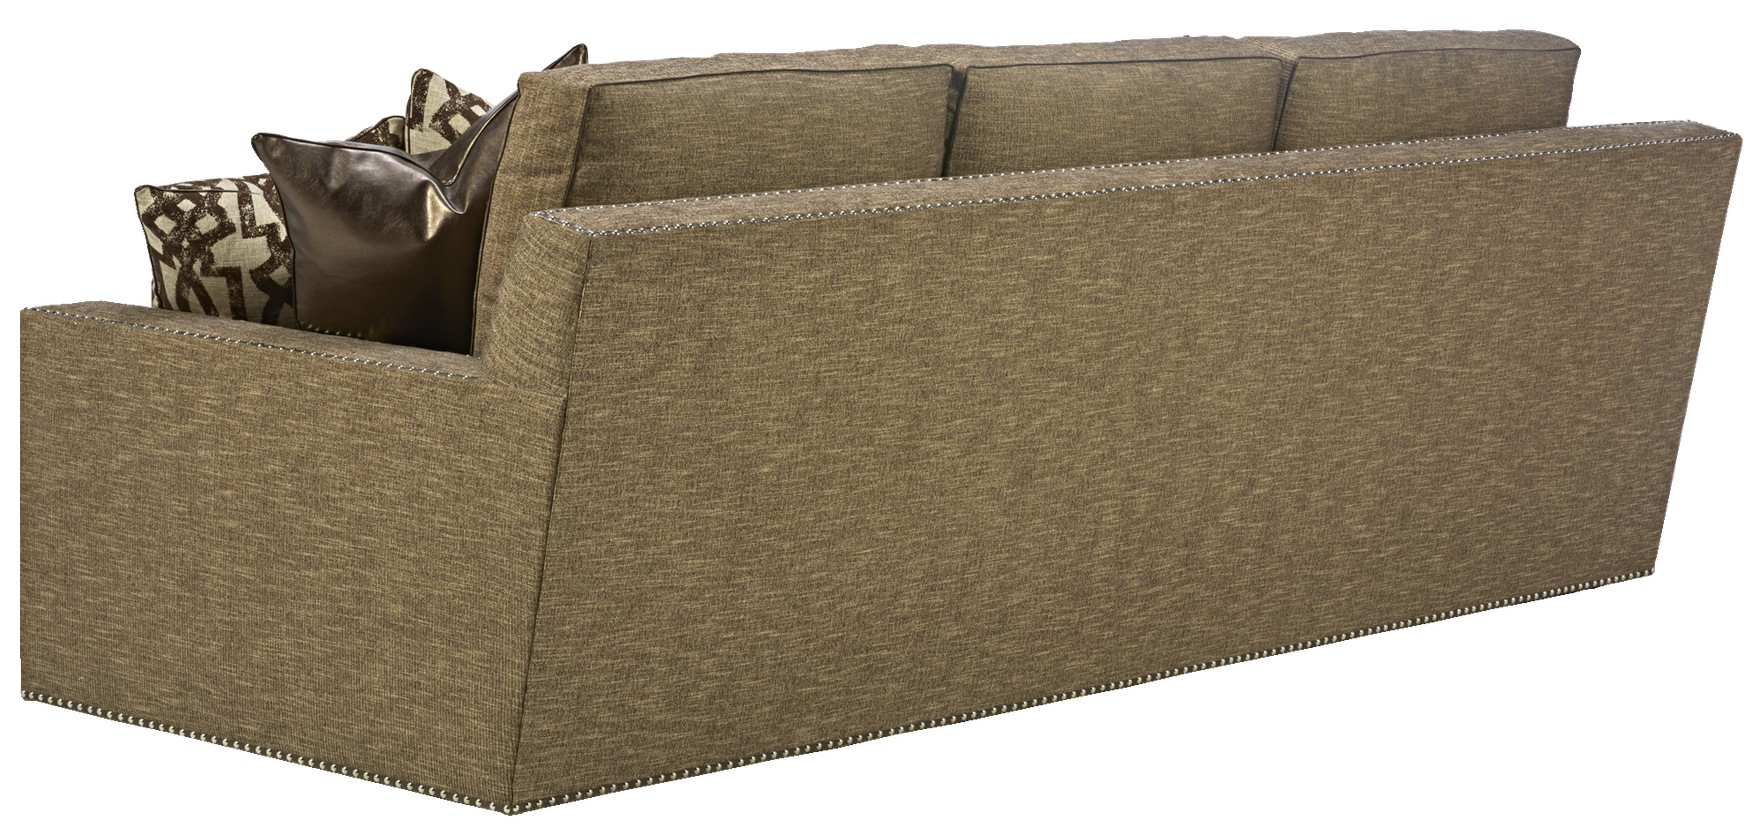 Sleek steal grey sofa with chic nailhead trim